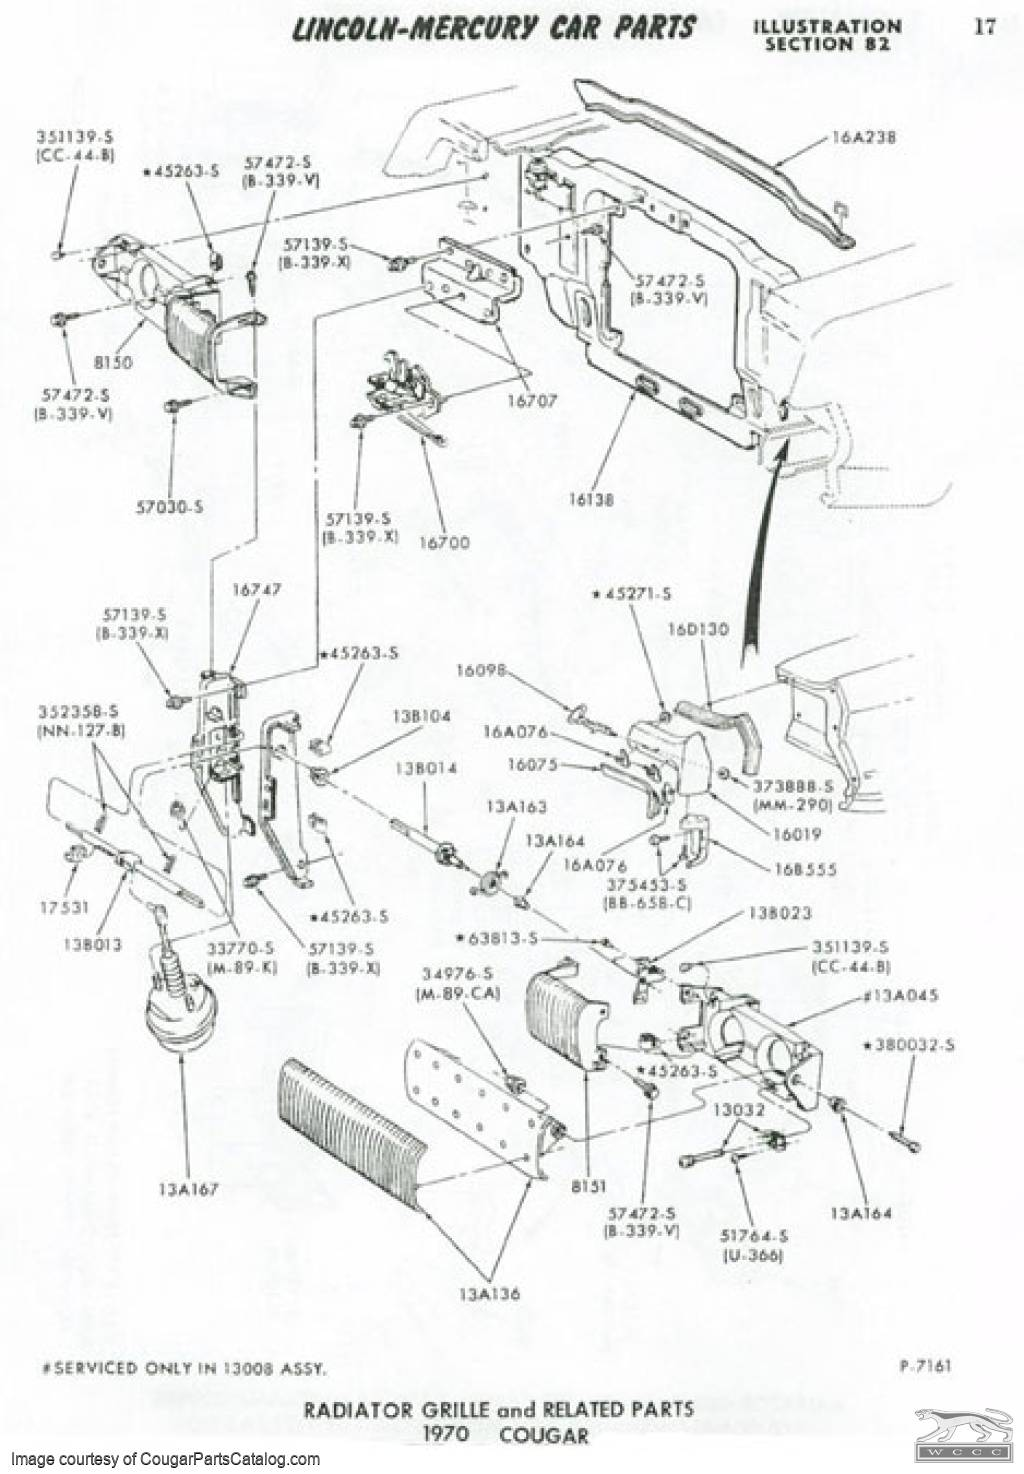 Light Wiring Diagram 78 Chevy Nova